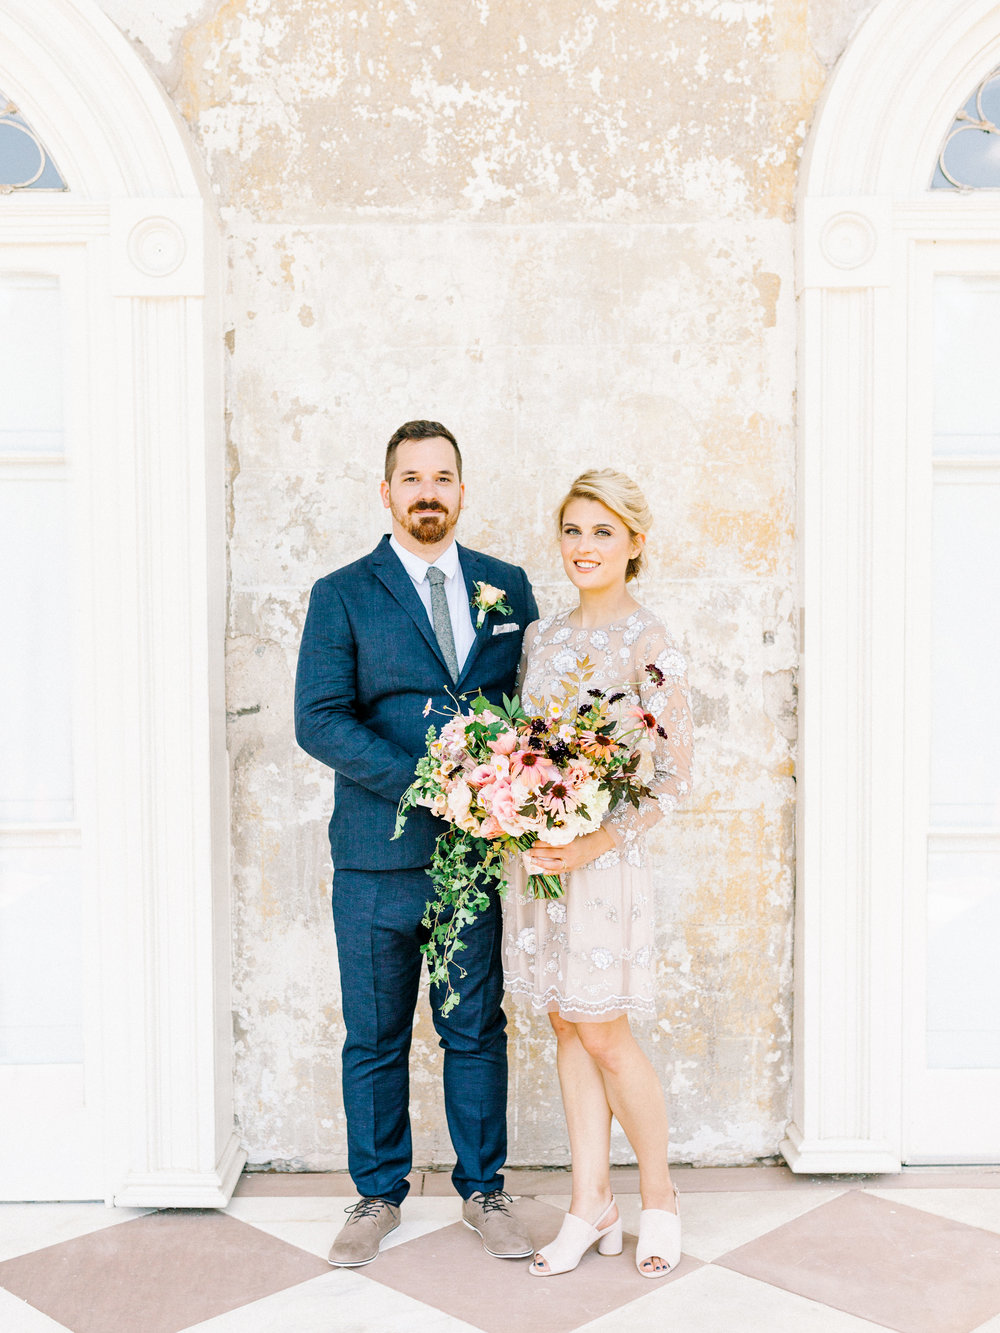 Emily and Jake looking fresh in their attire, including this blush beaded BHLDN gown, for our romantic and whimsical elopement wedding inspiration shoot at the Woodlands Mansion in Philadelphia.